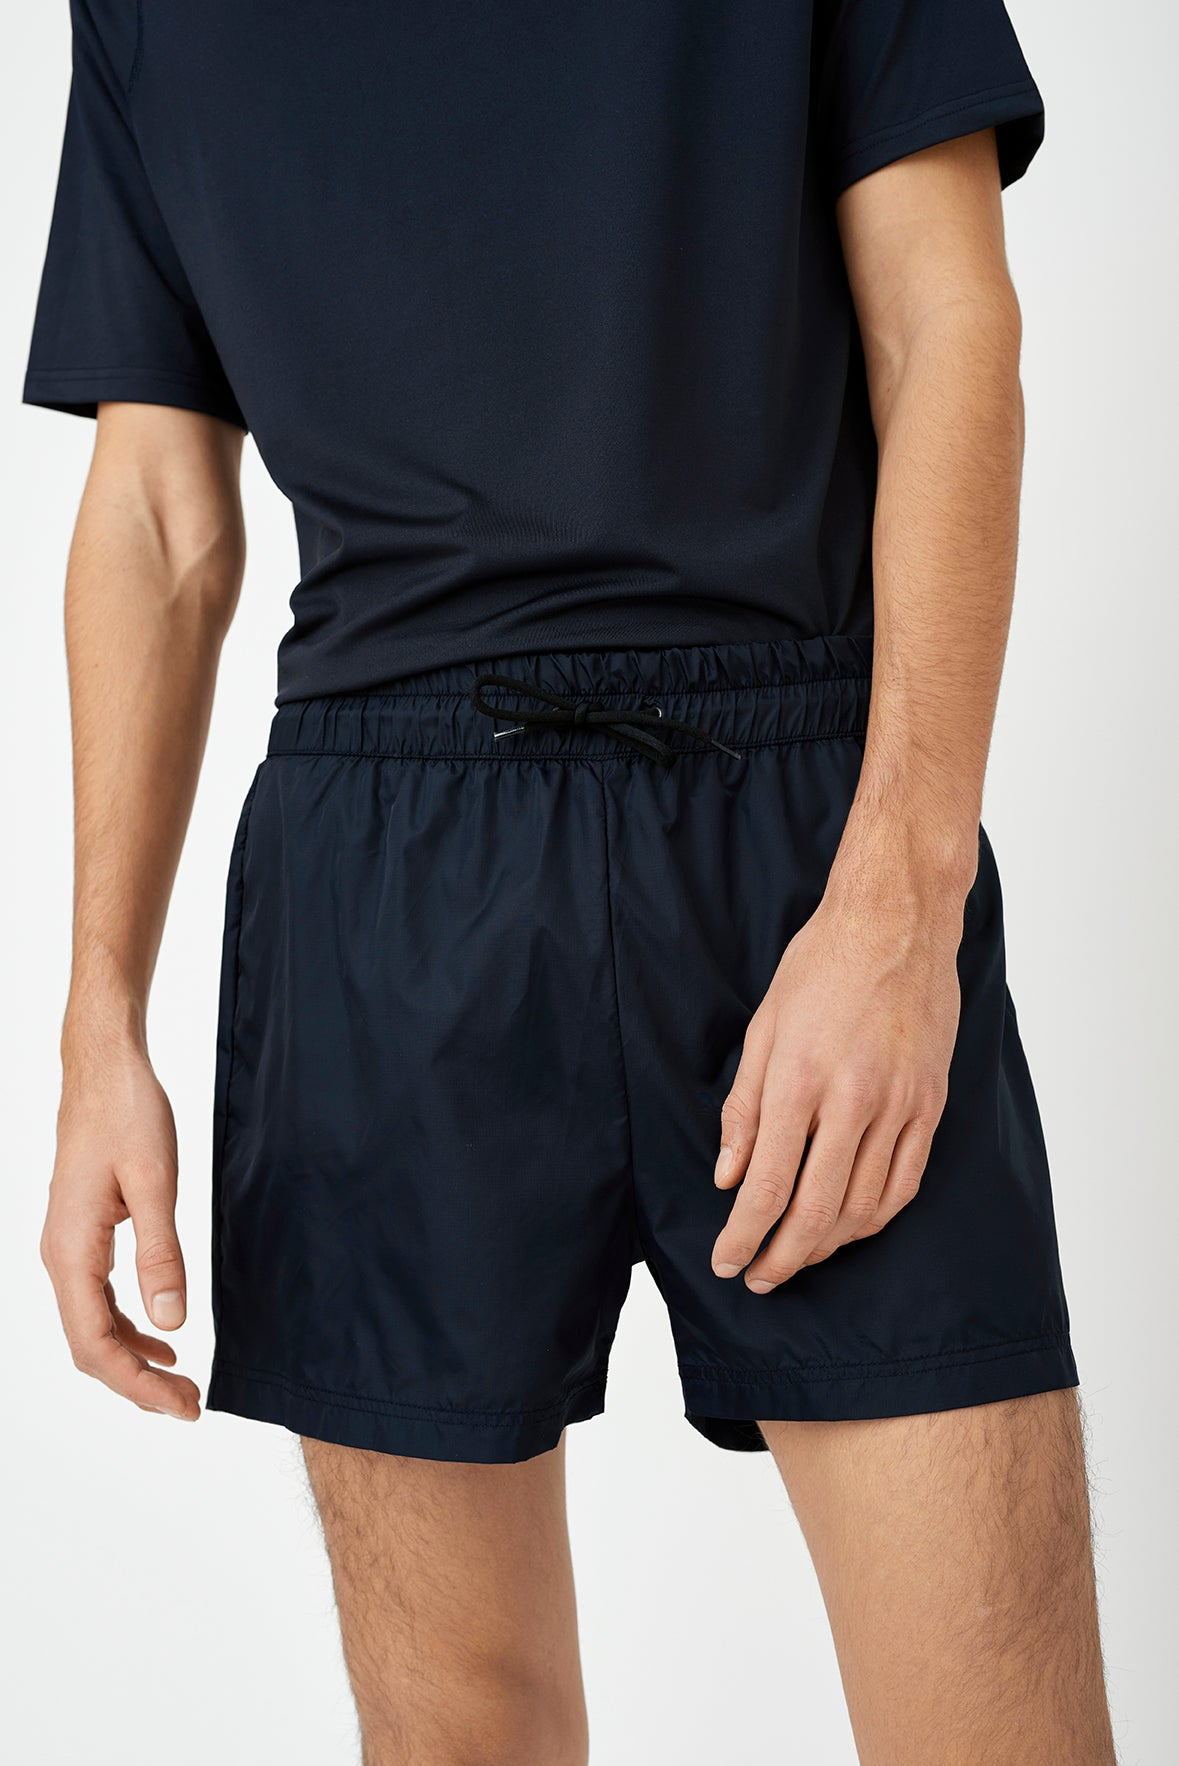 Carven mens running shorts